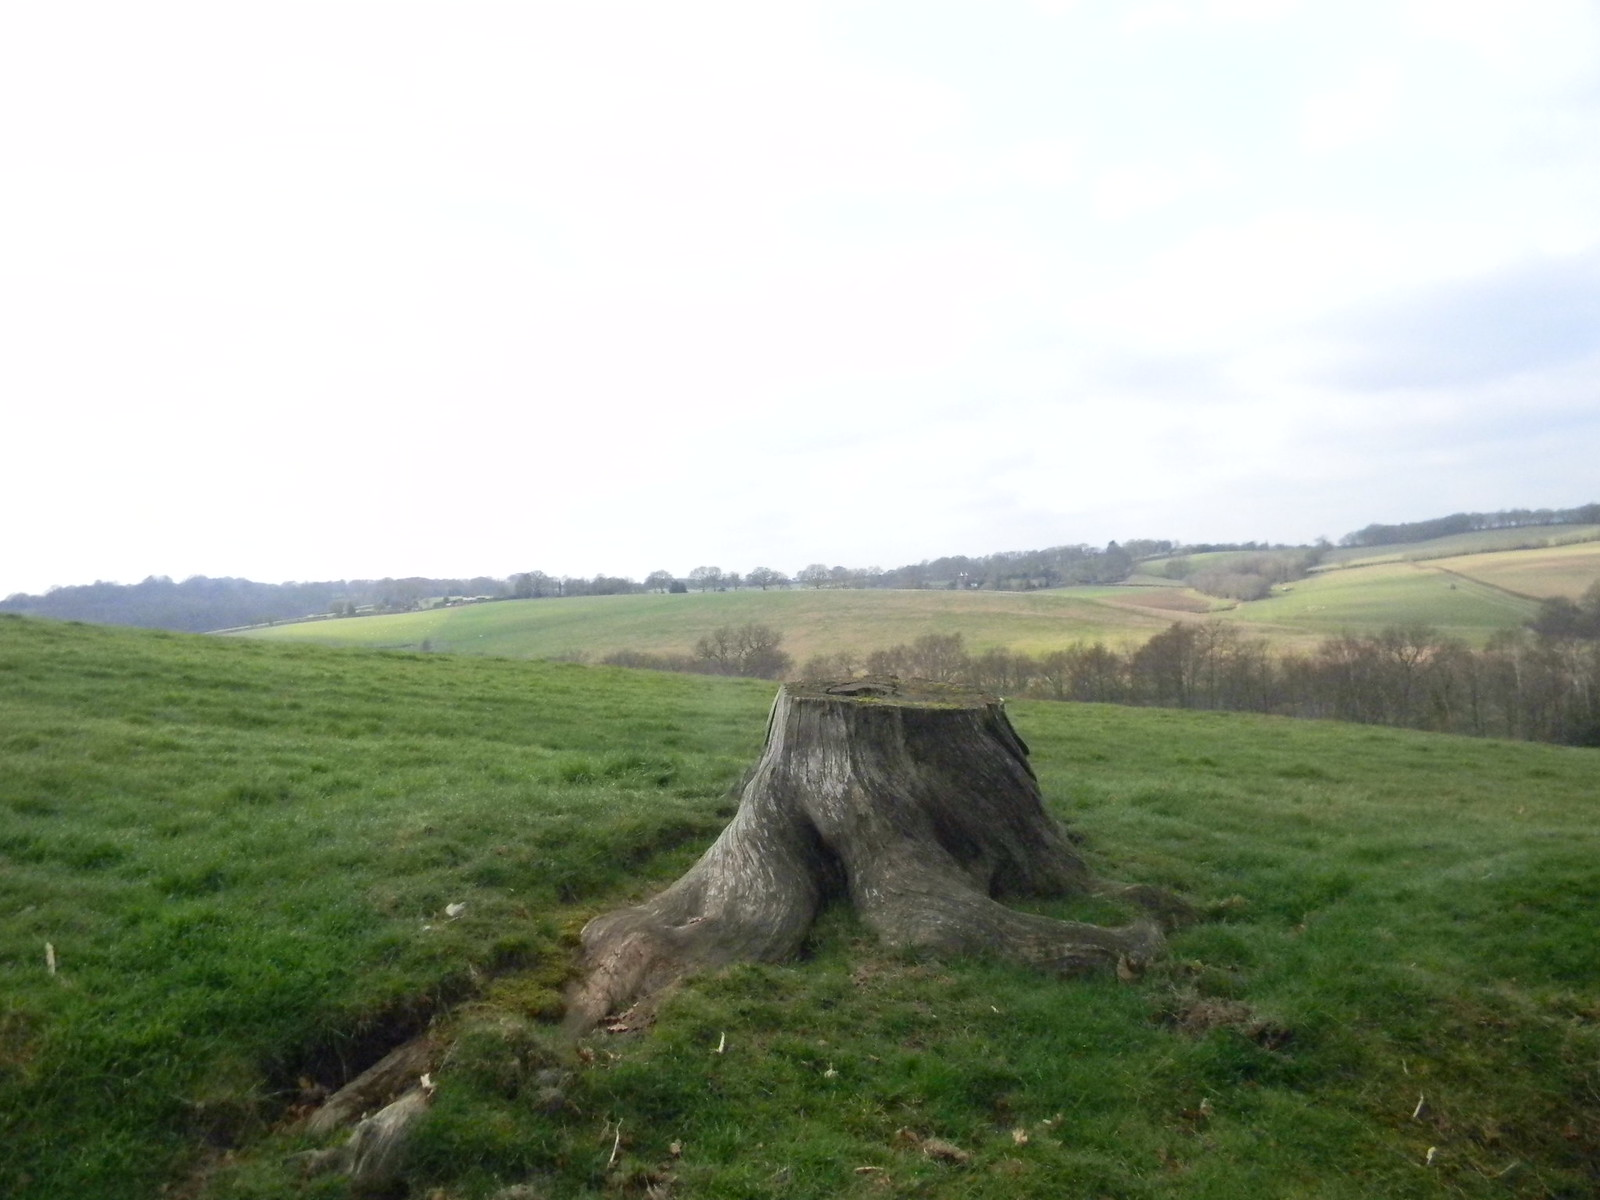 View with stump Robertsbridge to Battle